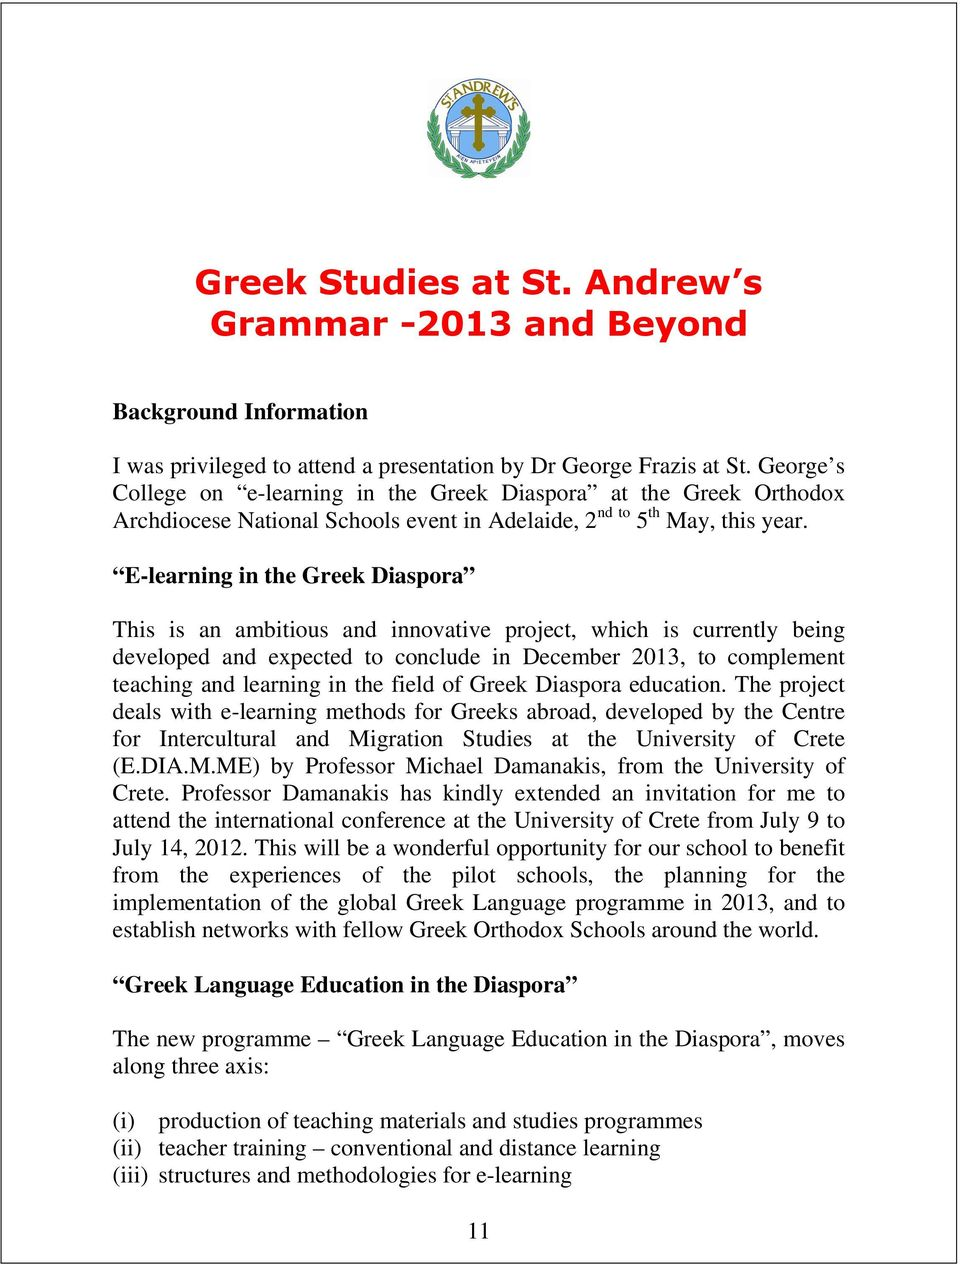 E-learning in the Greek Diaspora This is an ambitious and innovative project, which is currently being developed and expected to conclude in December 2013, to complement teaching and learning in the